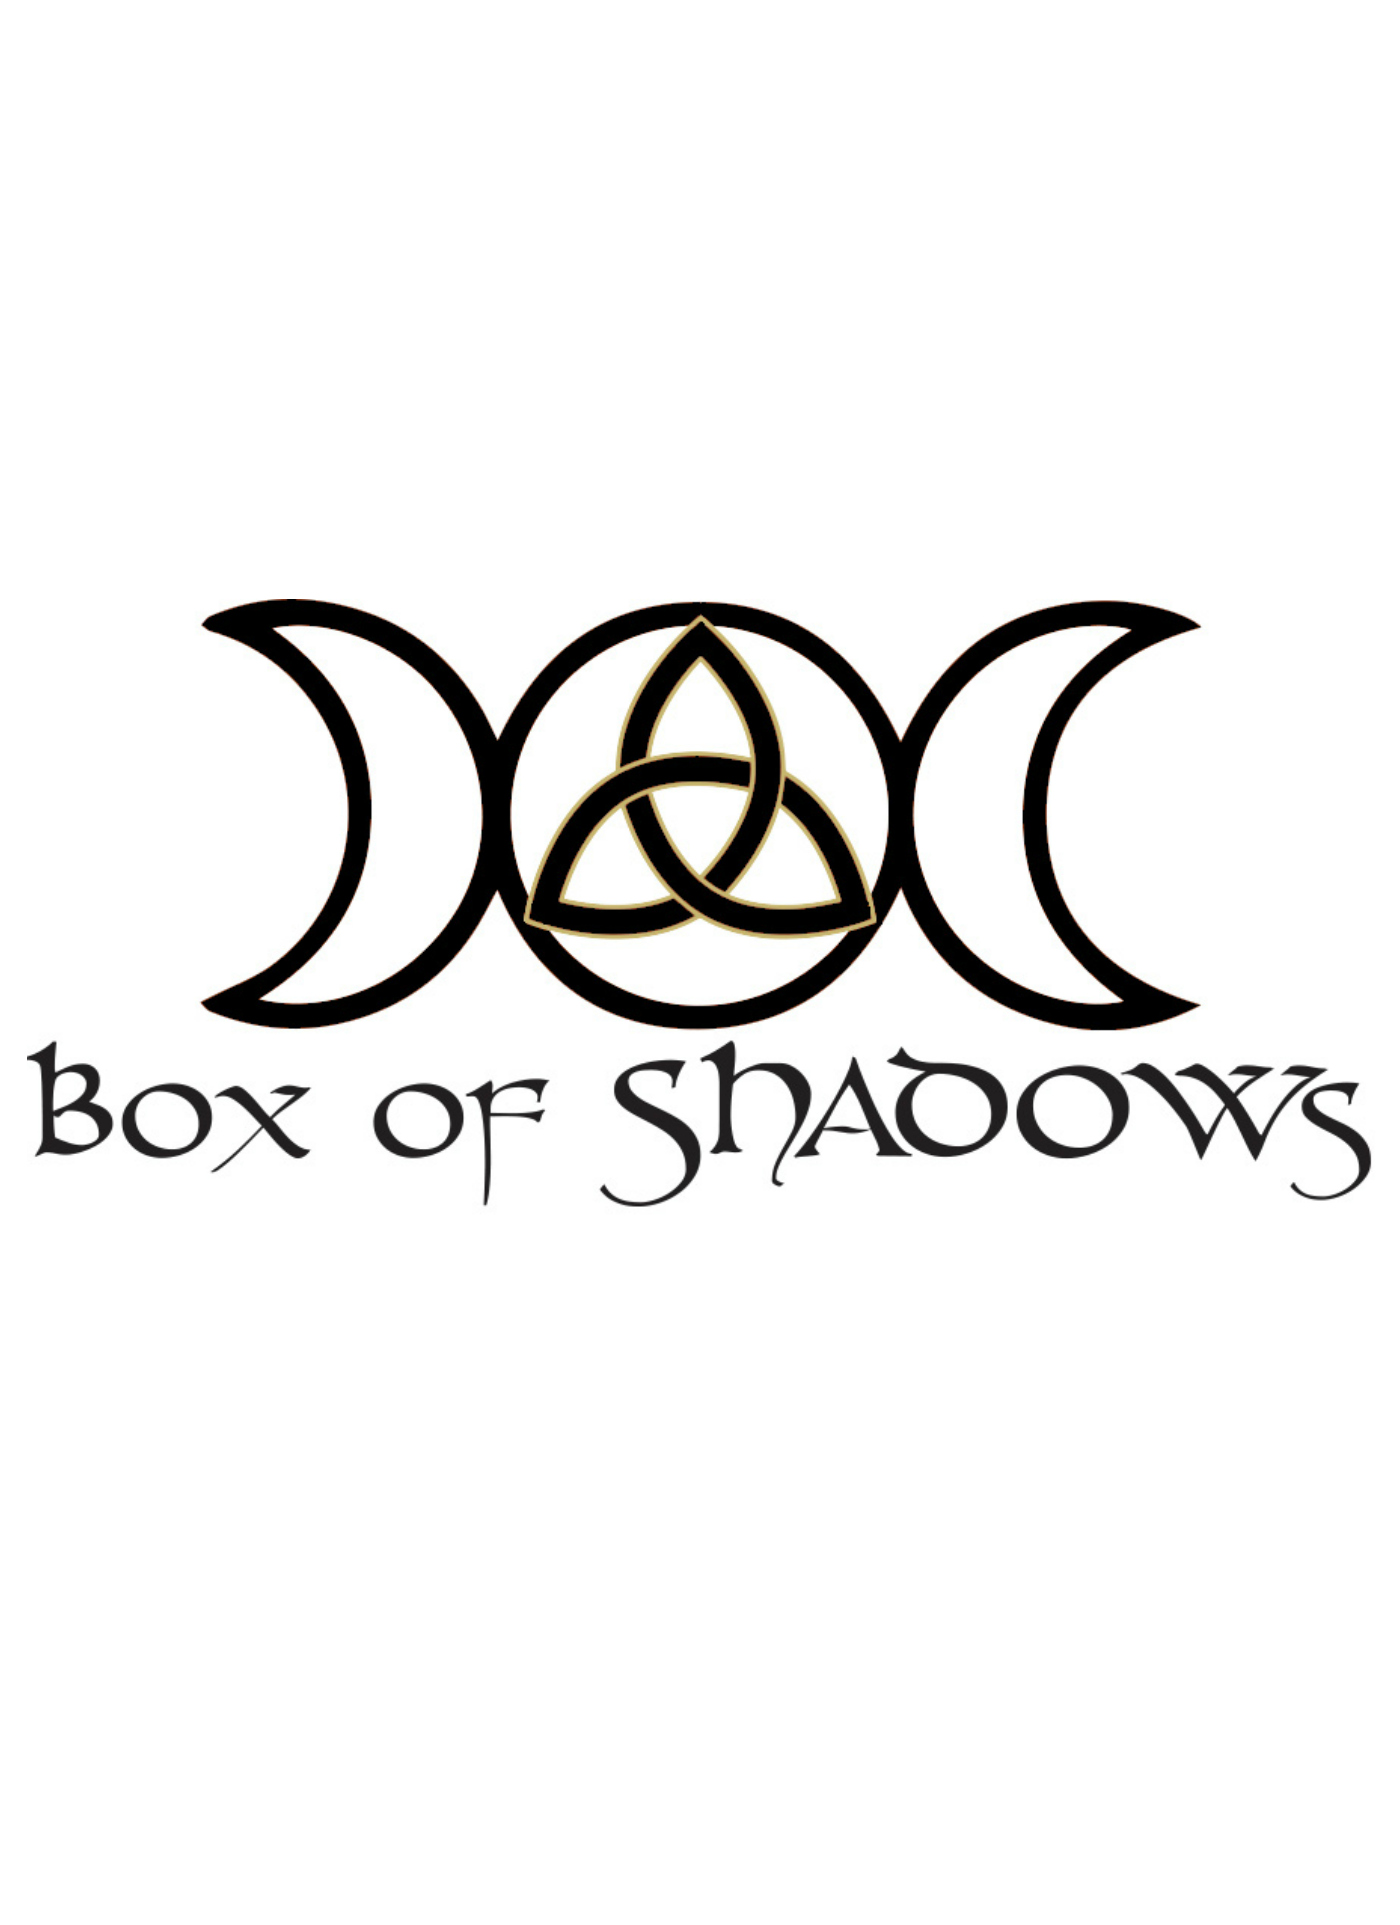 qc-boxofshadows.jpg